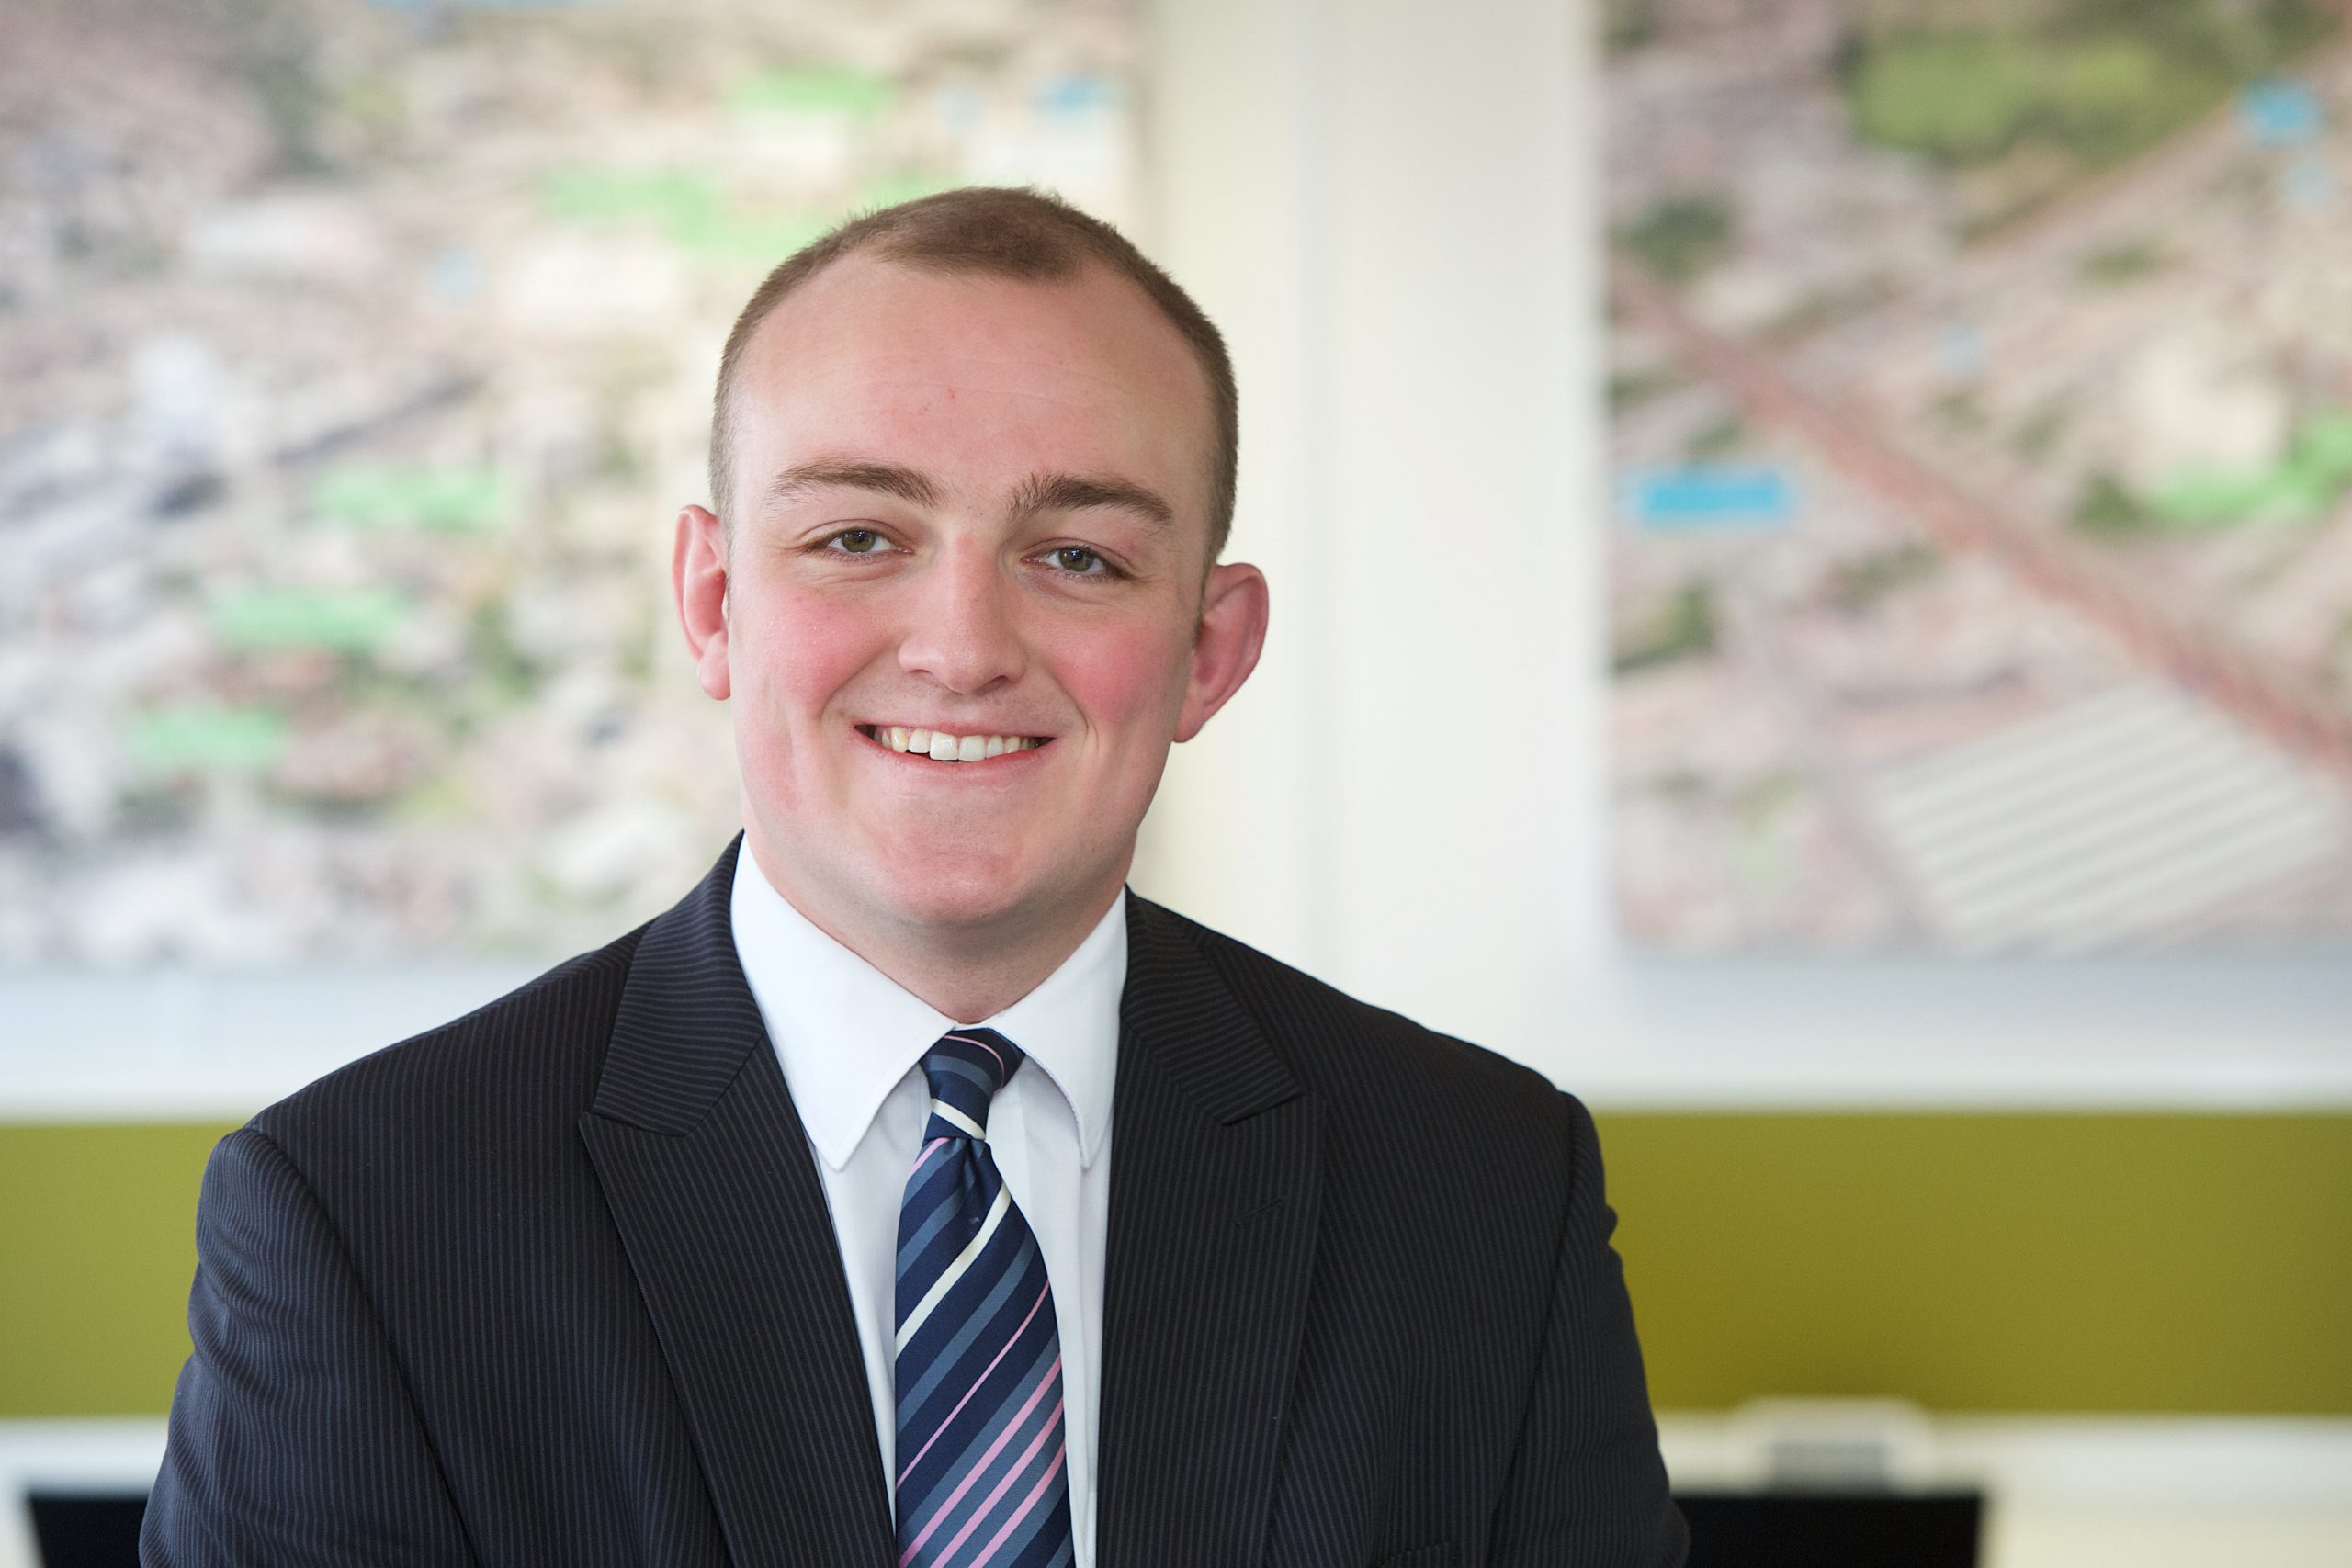 Contact James Nicholson for Stockport offices to let